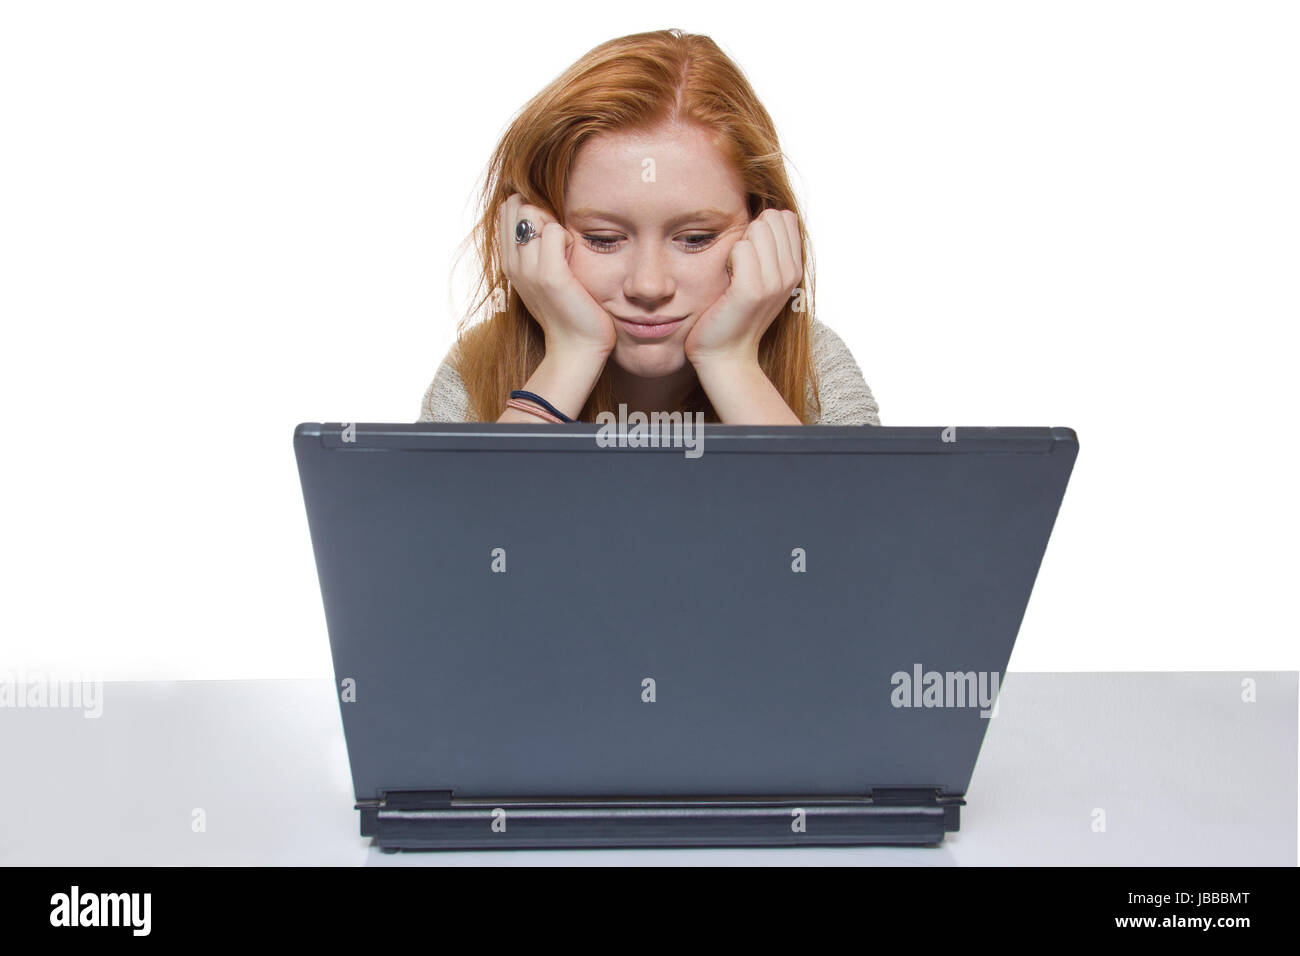 female student sitting bored and frustrated in front of the computer